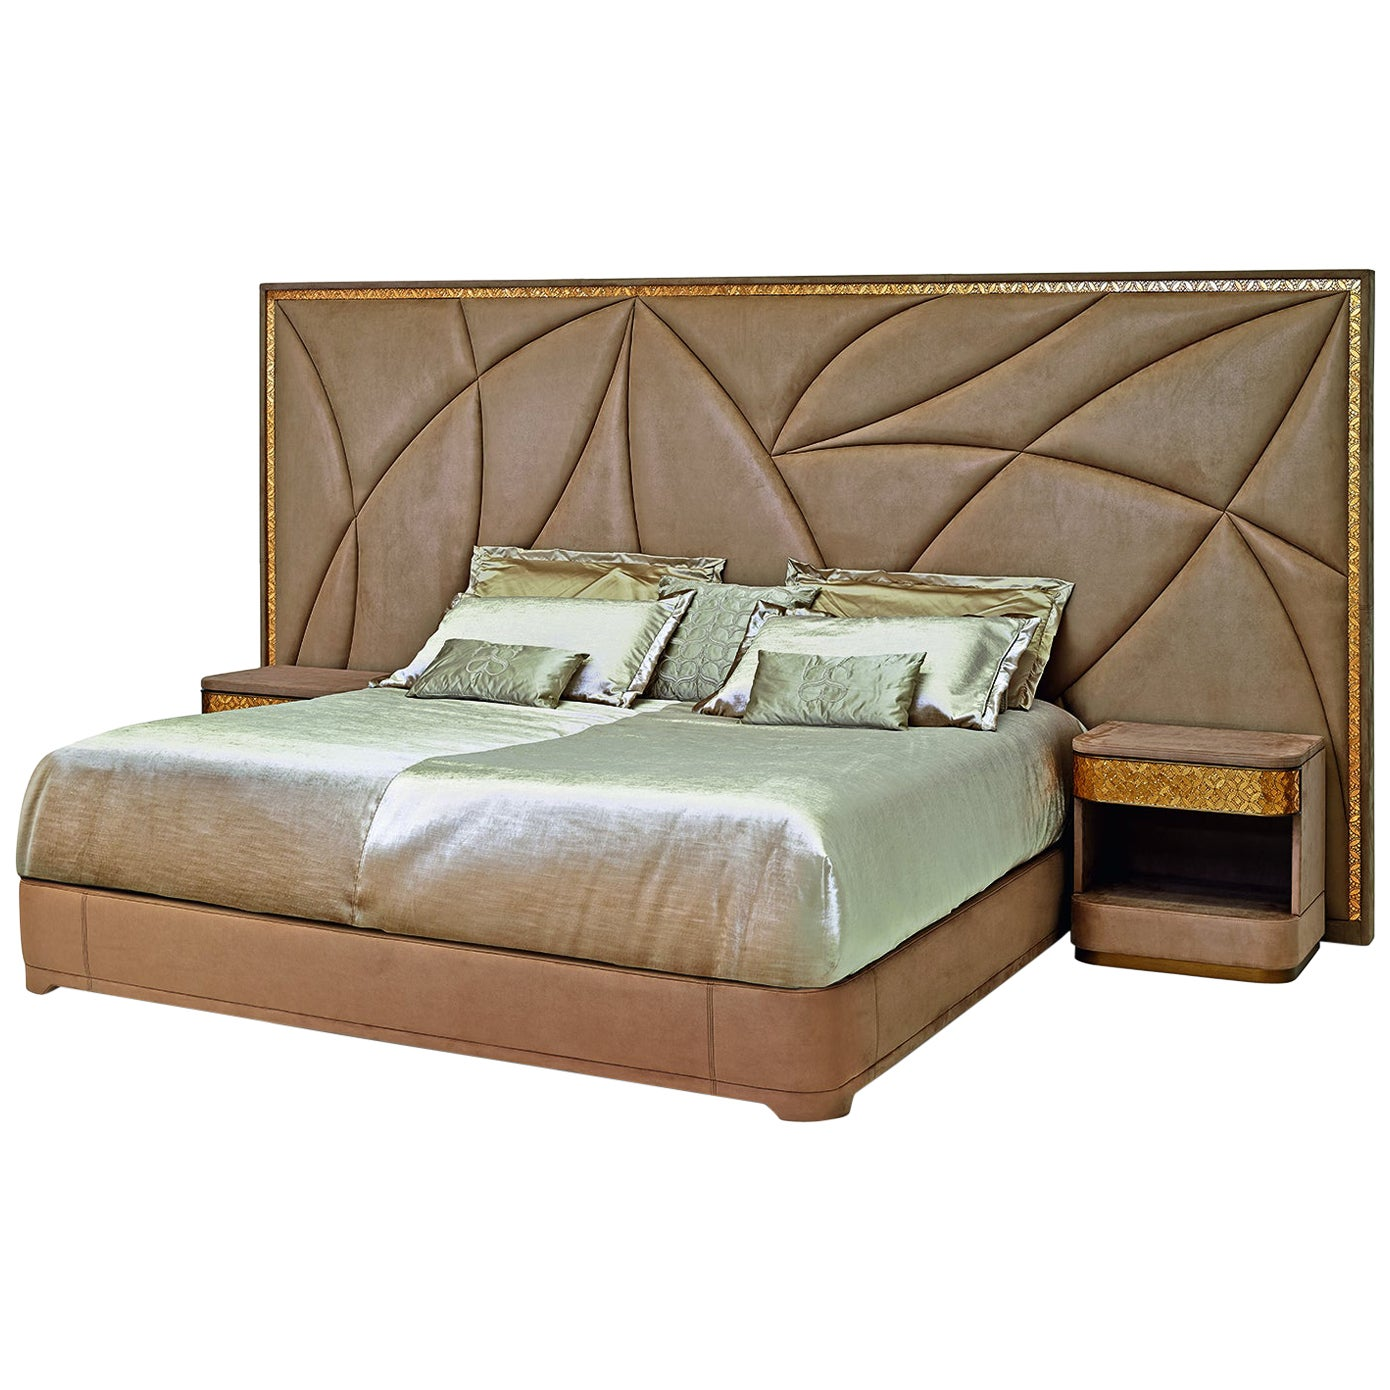 Bed Headboard Bedframe Plywood Edge Trim Distressed Paint Leather or Fabric